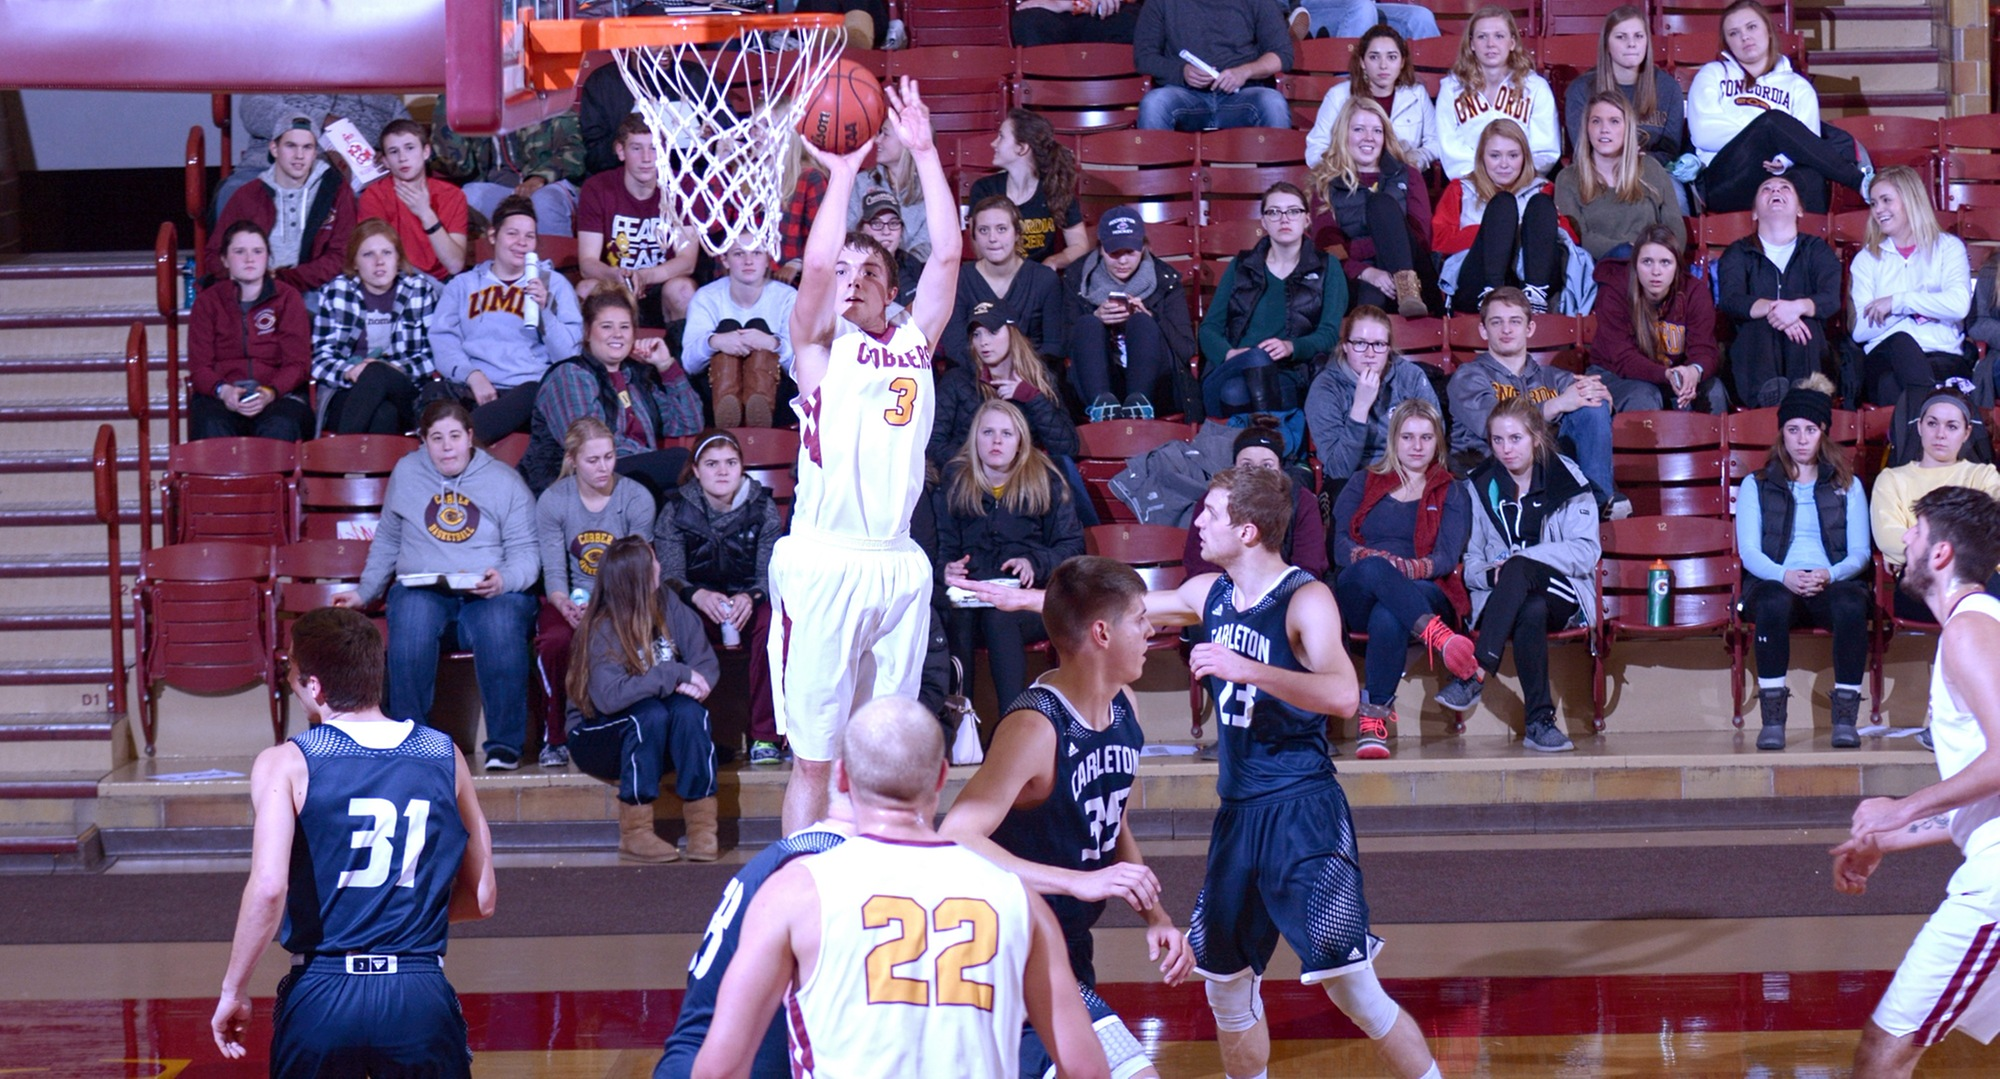 Senior Zach Kinny scored a team-high 12 points and grabbed five rebounds in the Cobbers' game at Carleton.